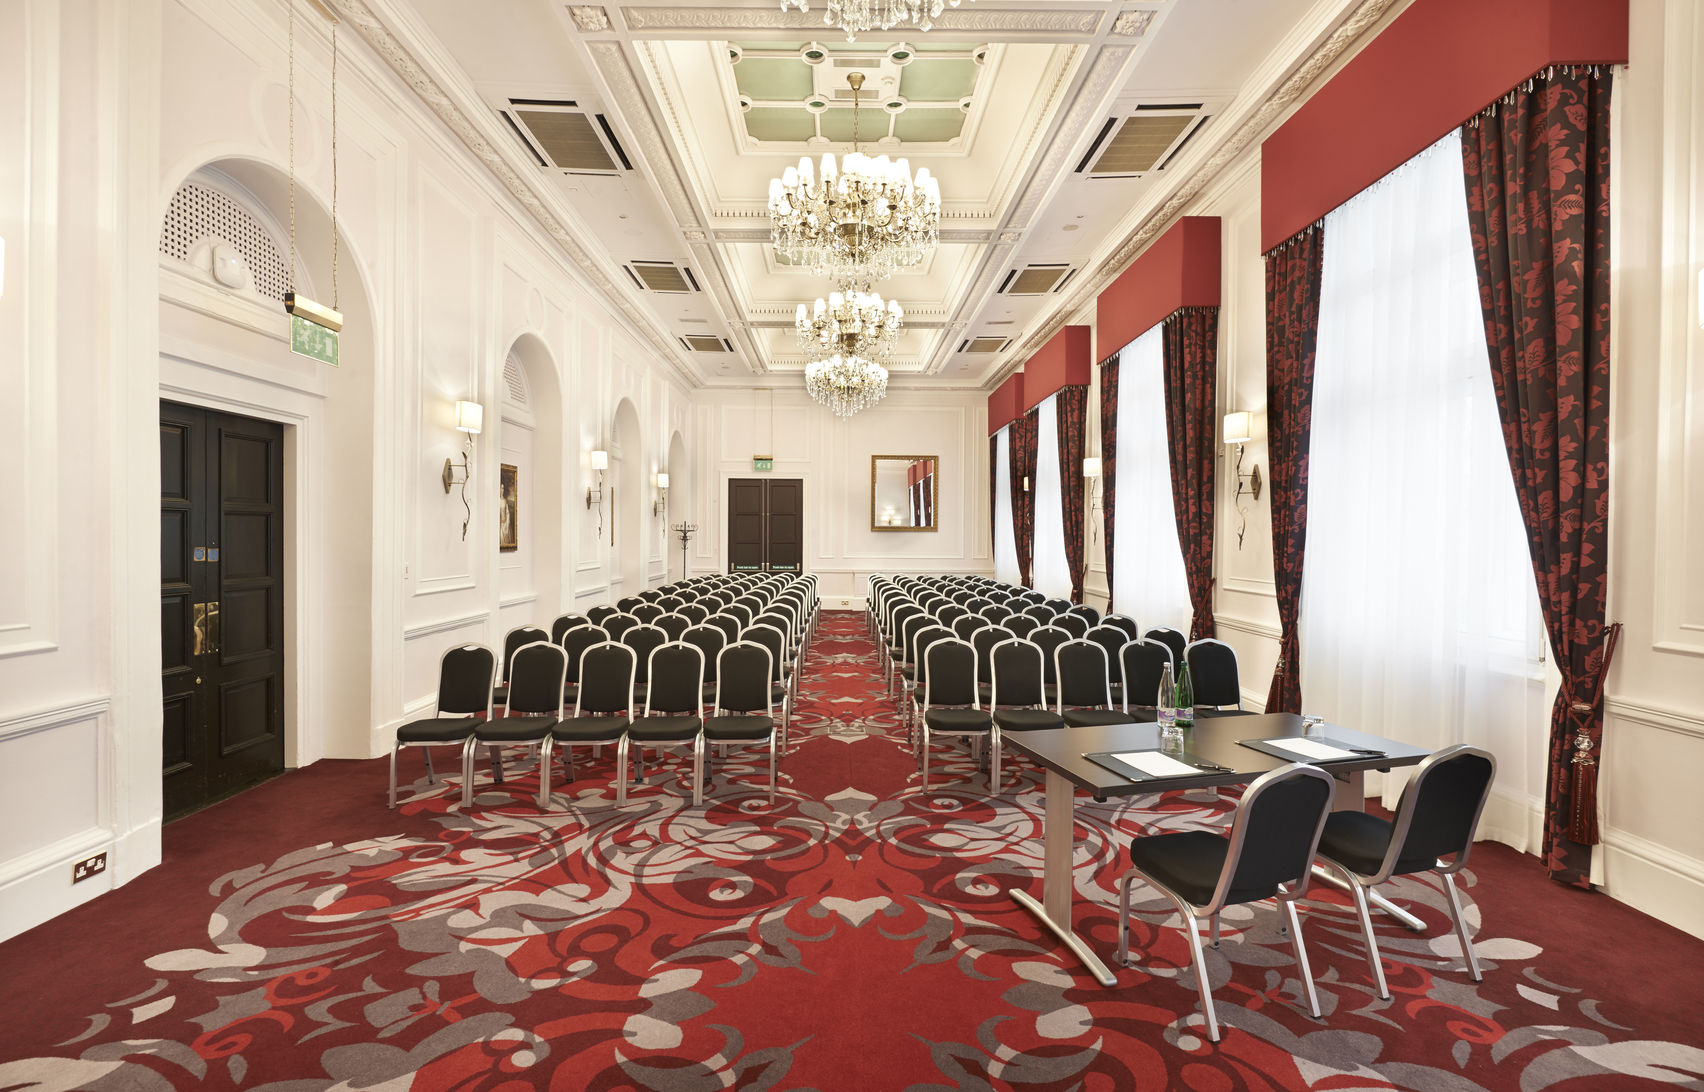 Events in Regency Room, Amba Hotel Charing Cross